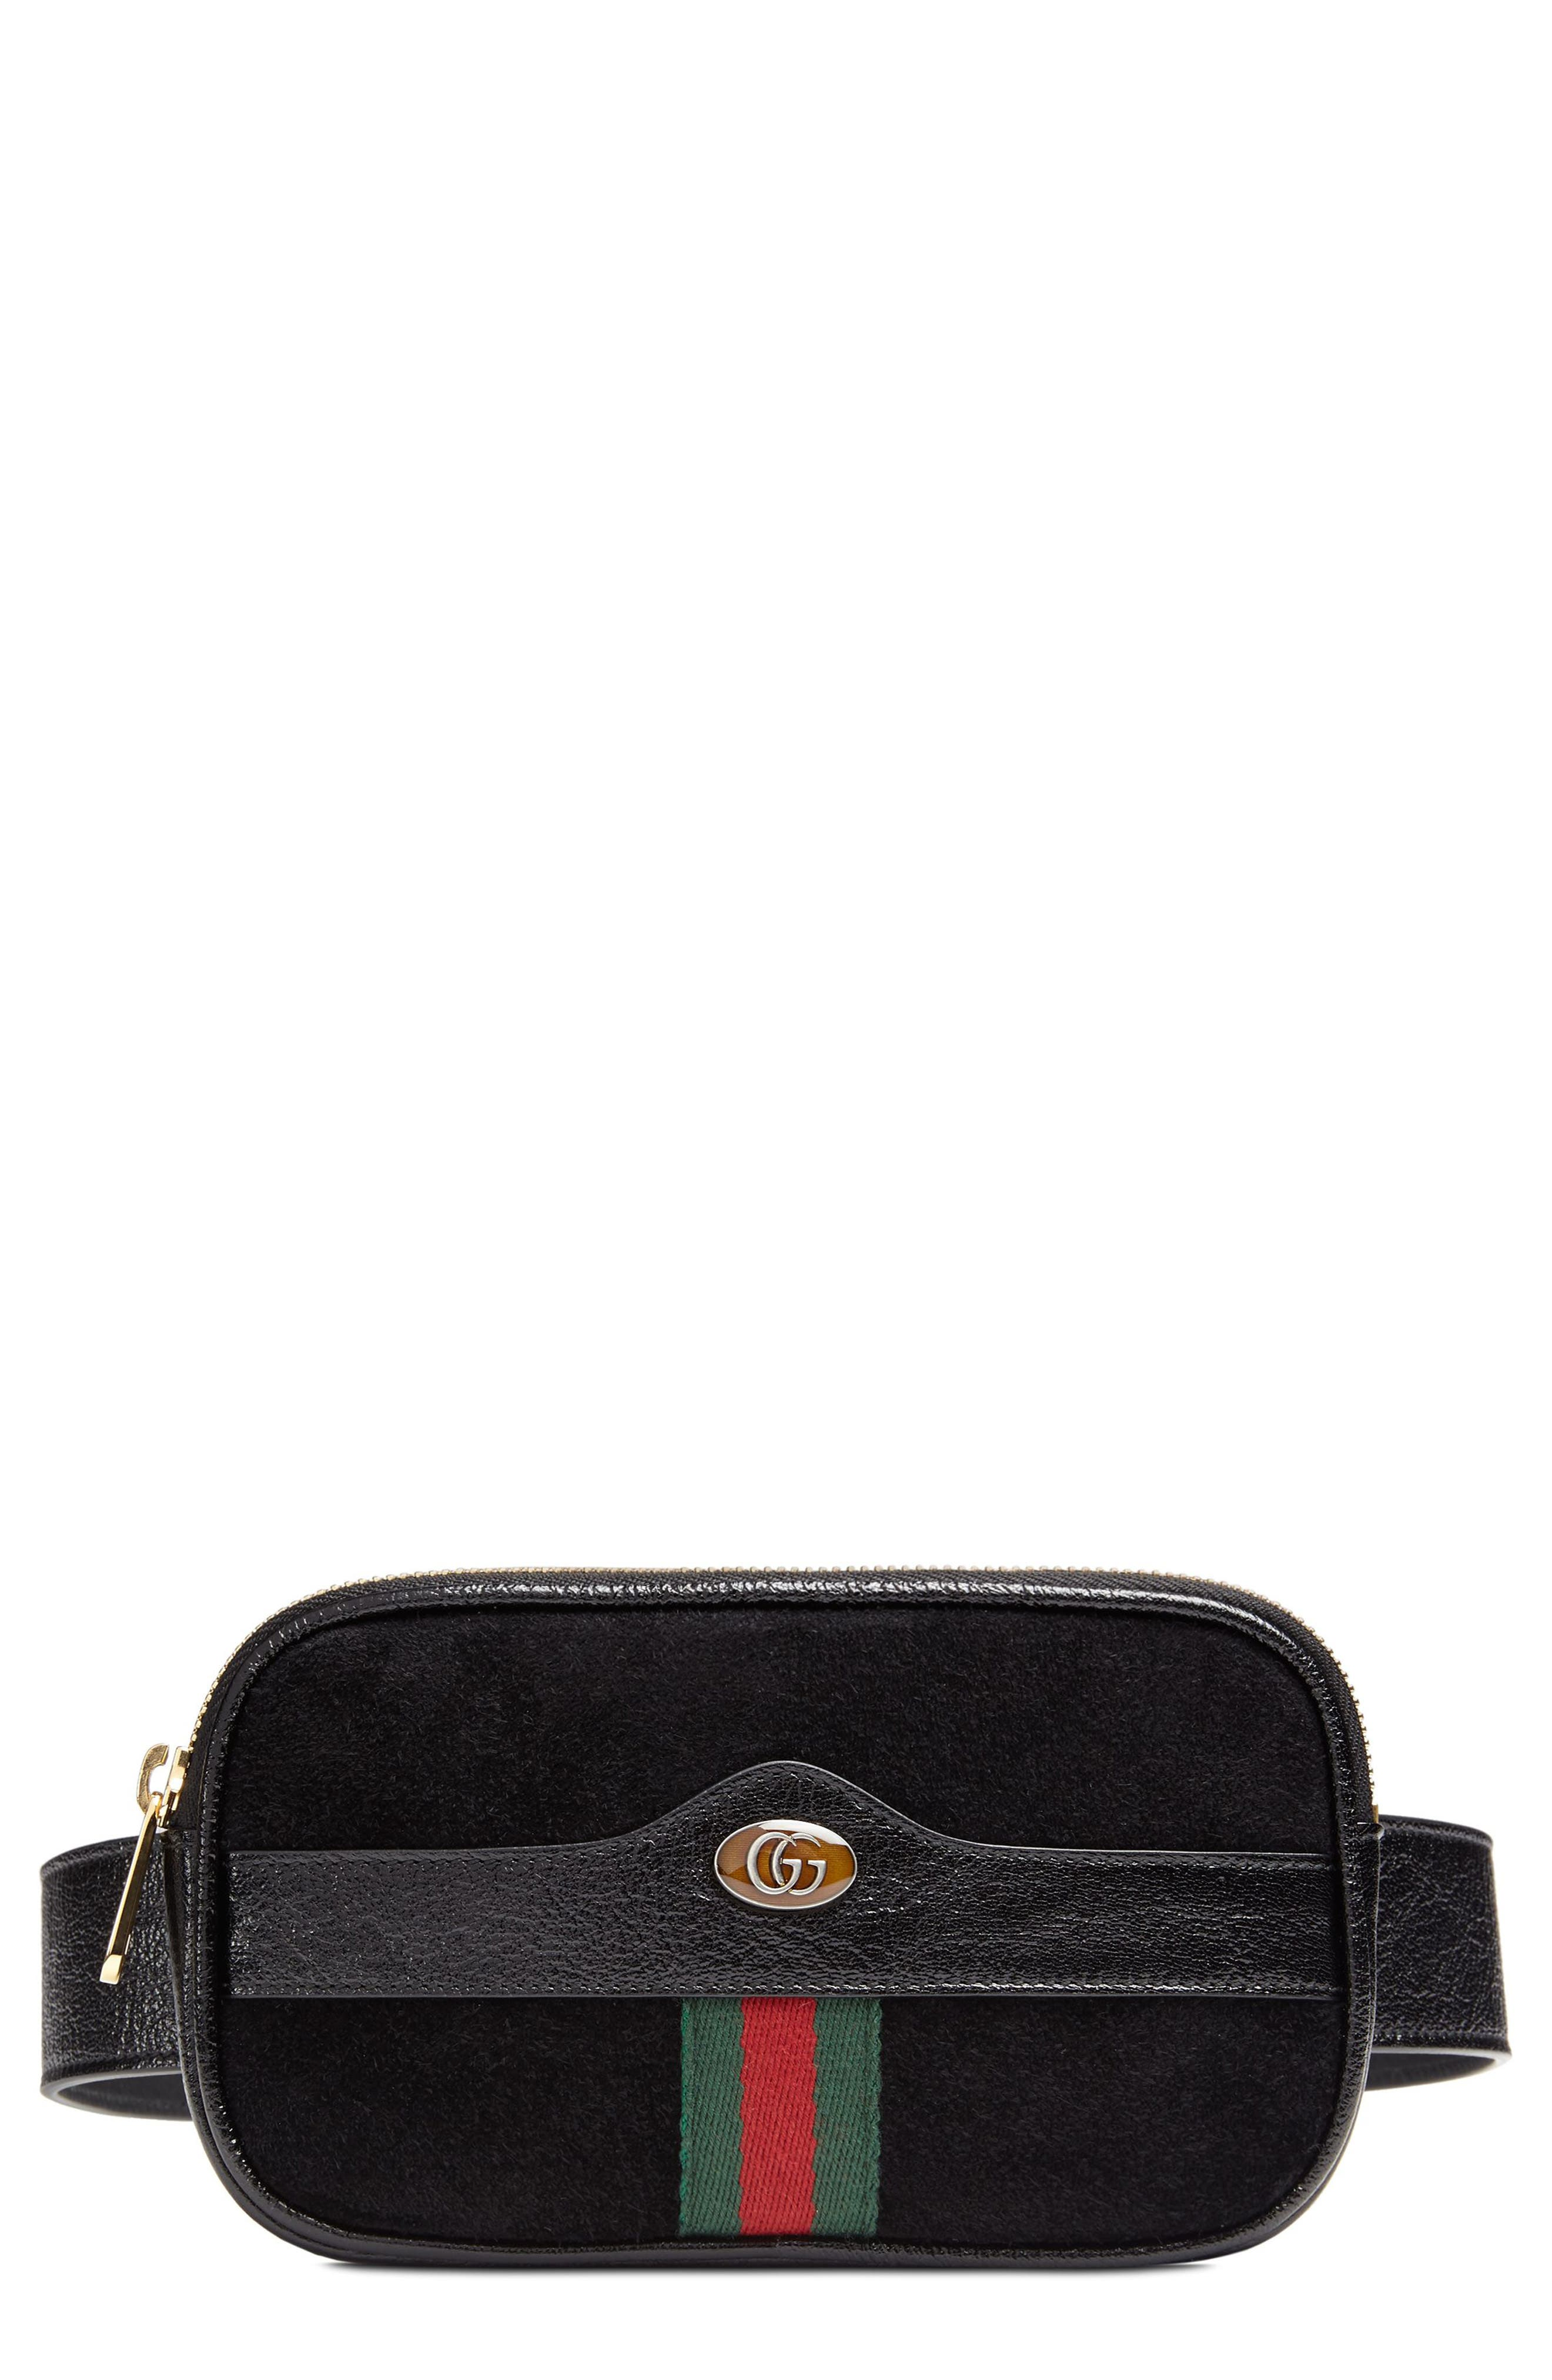 Ophidia Suede & Leather Belt Bag,                         Main,                         color, NERO/ VERT/ RED